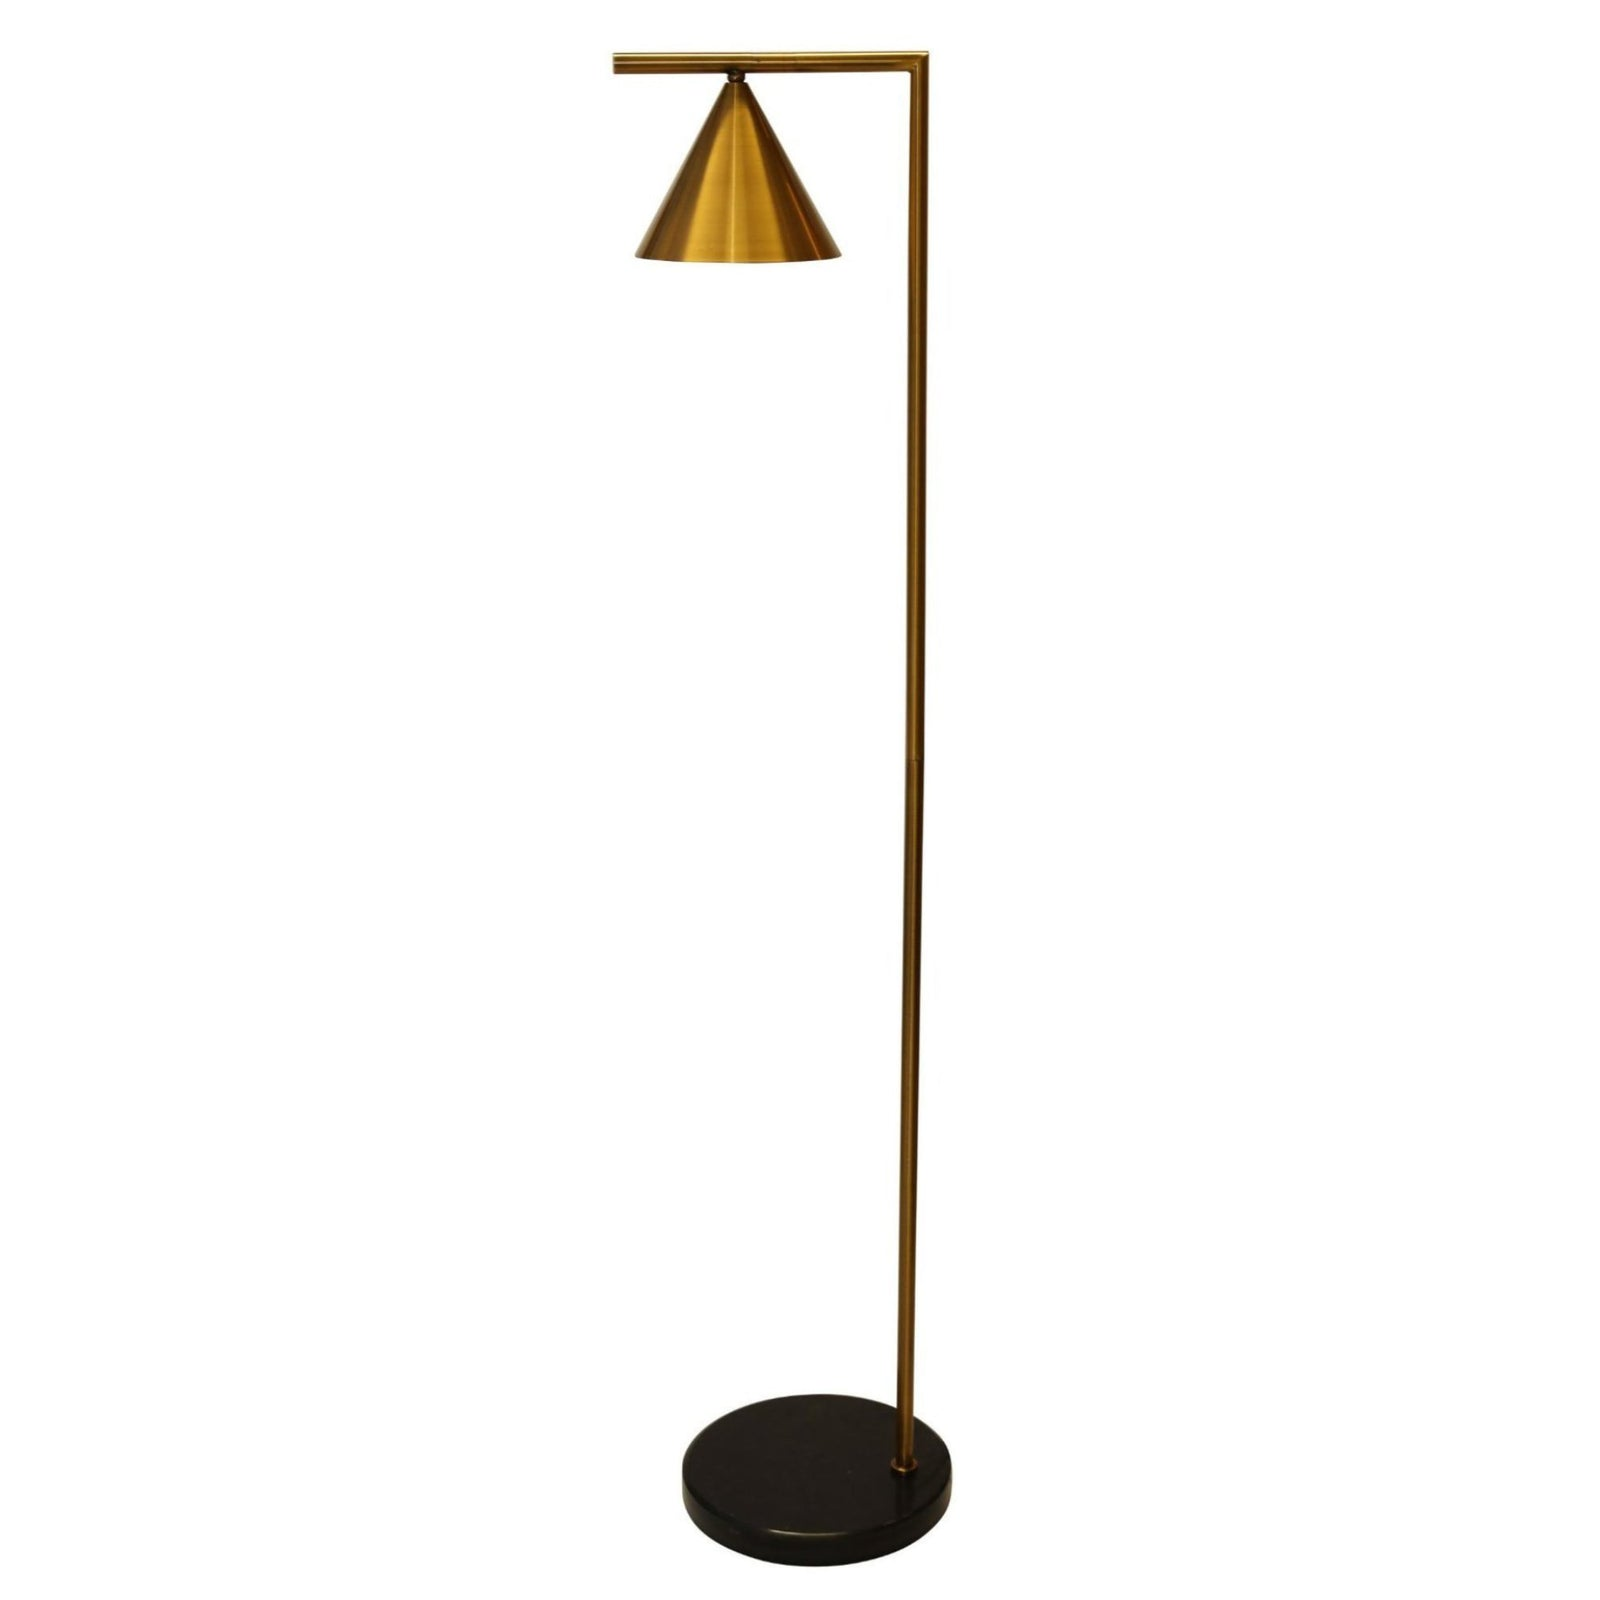 Retro Conical Floor Lamp